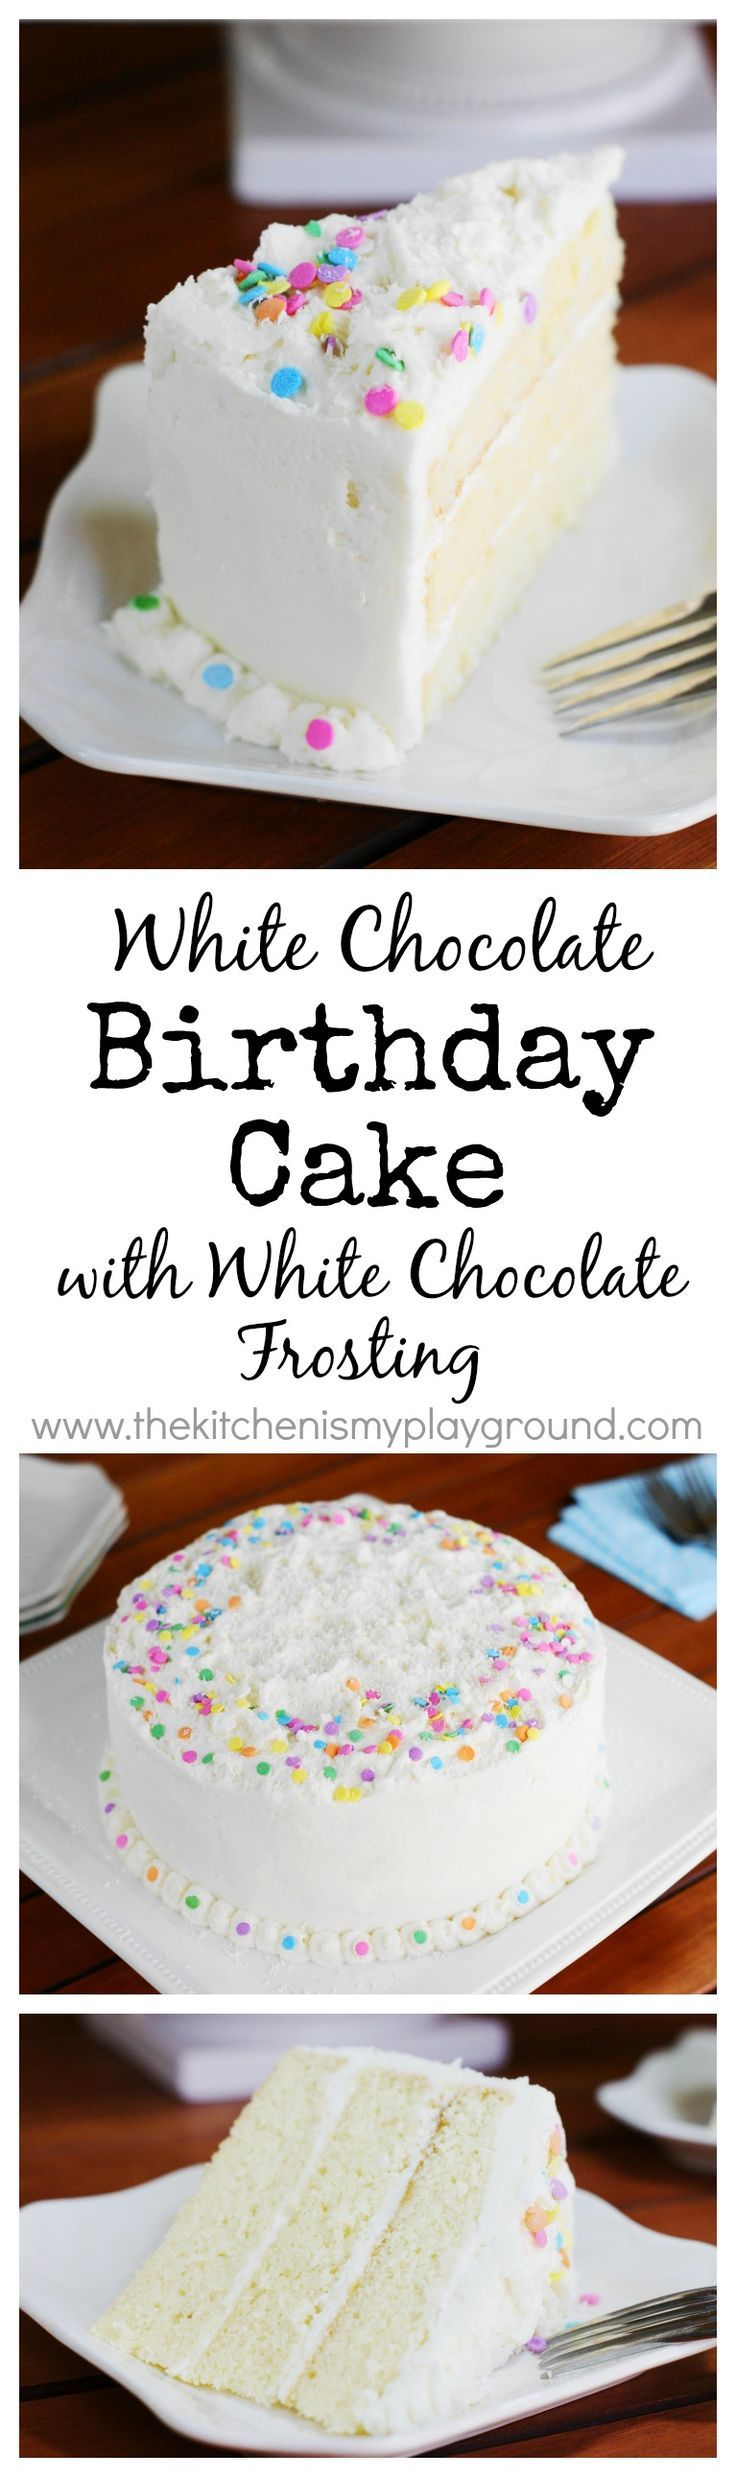 White Chocolate Birthday {or Easter} Cake ~ loaded with white chocolate in both the cake itself and the frosting!    www.thekitchenismyplayground.com